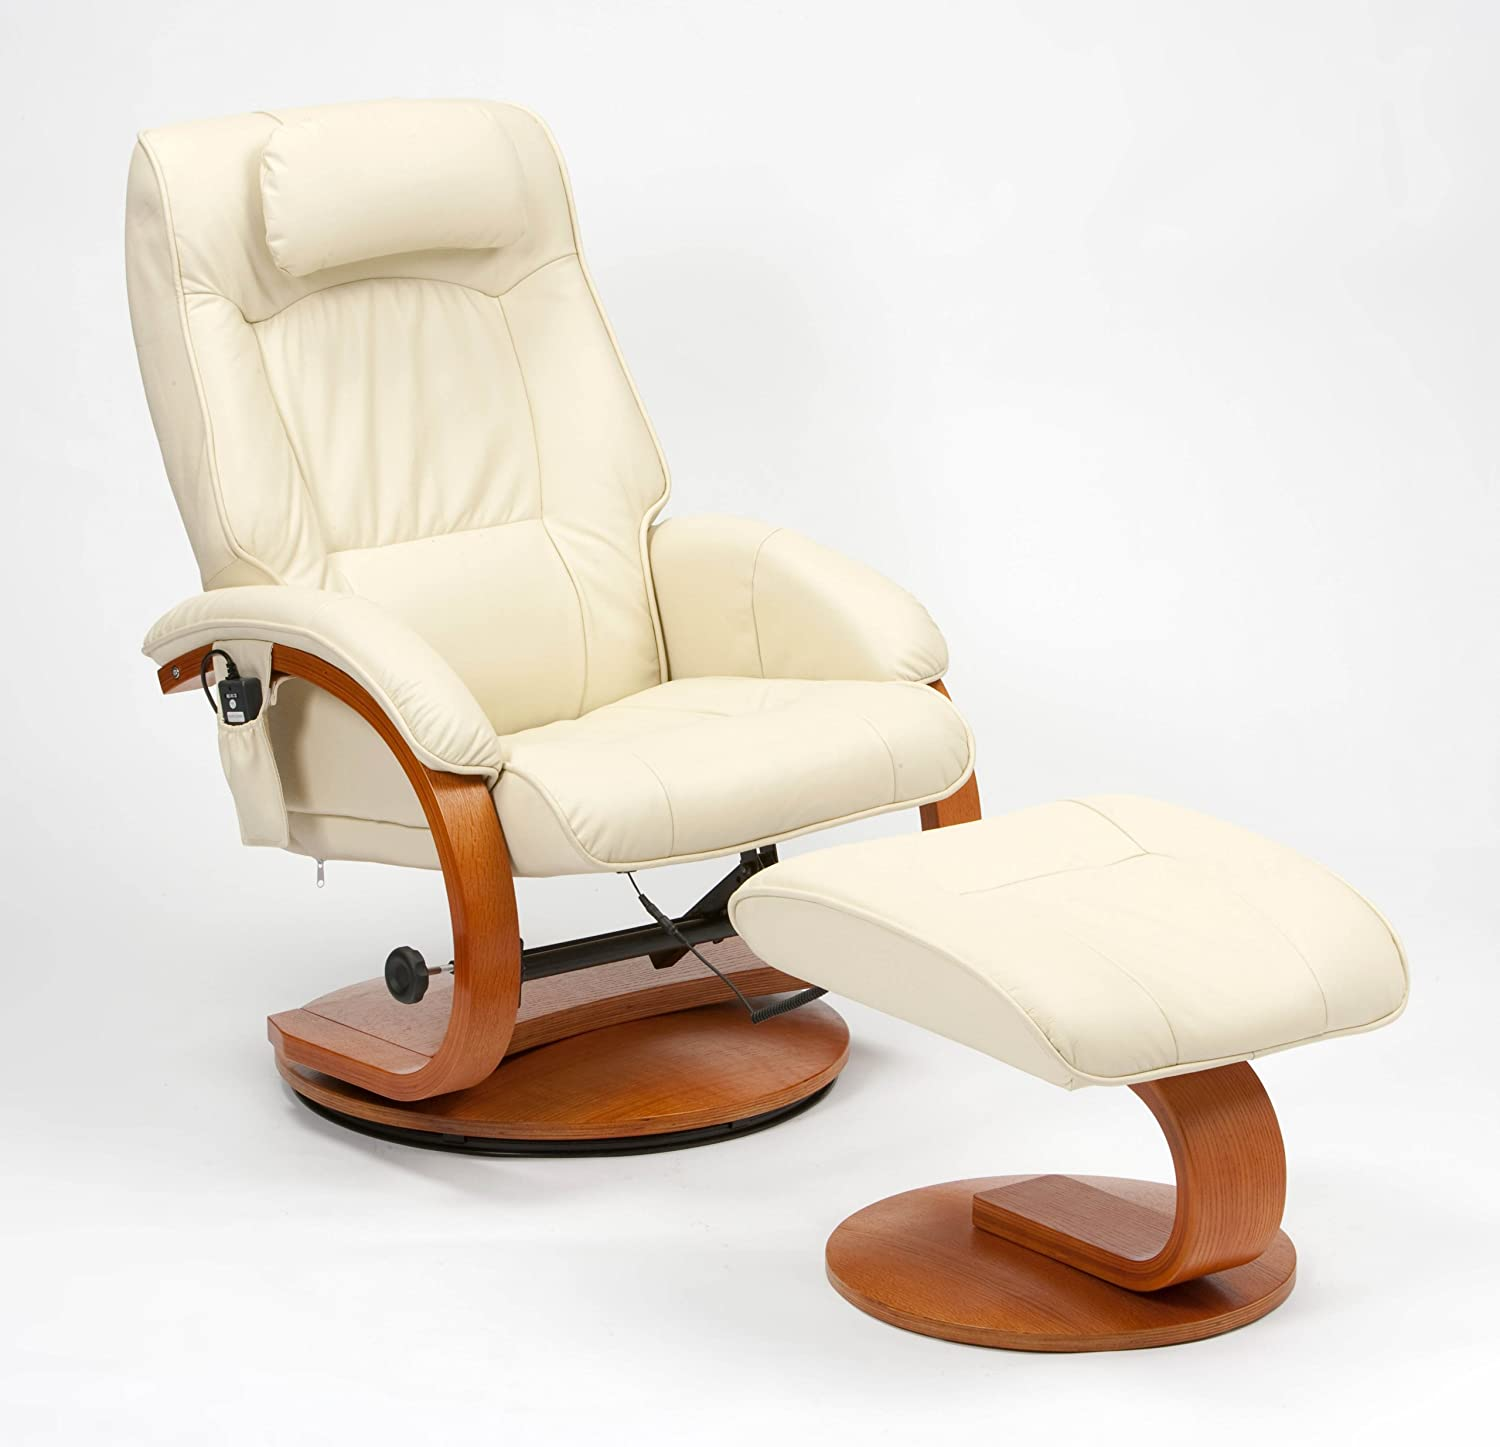 massage chair and footstool. massage chair and footstool /